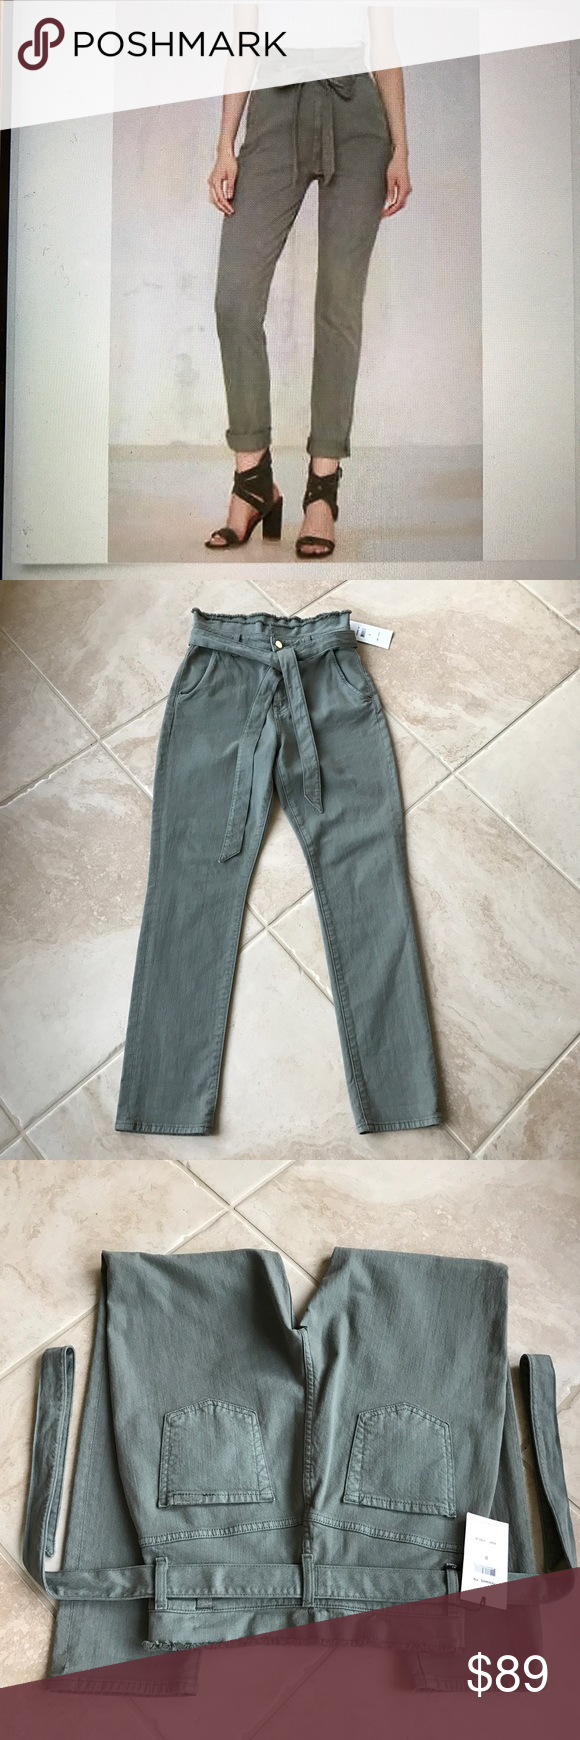 7 for all mankind pants Brand new with tag, paper bag style waist, simple self belt,single button closure and zip fly , 97% cotton 3% spandex, fabric provides stretch 7 For All Mankind Pants